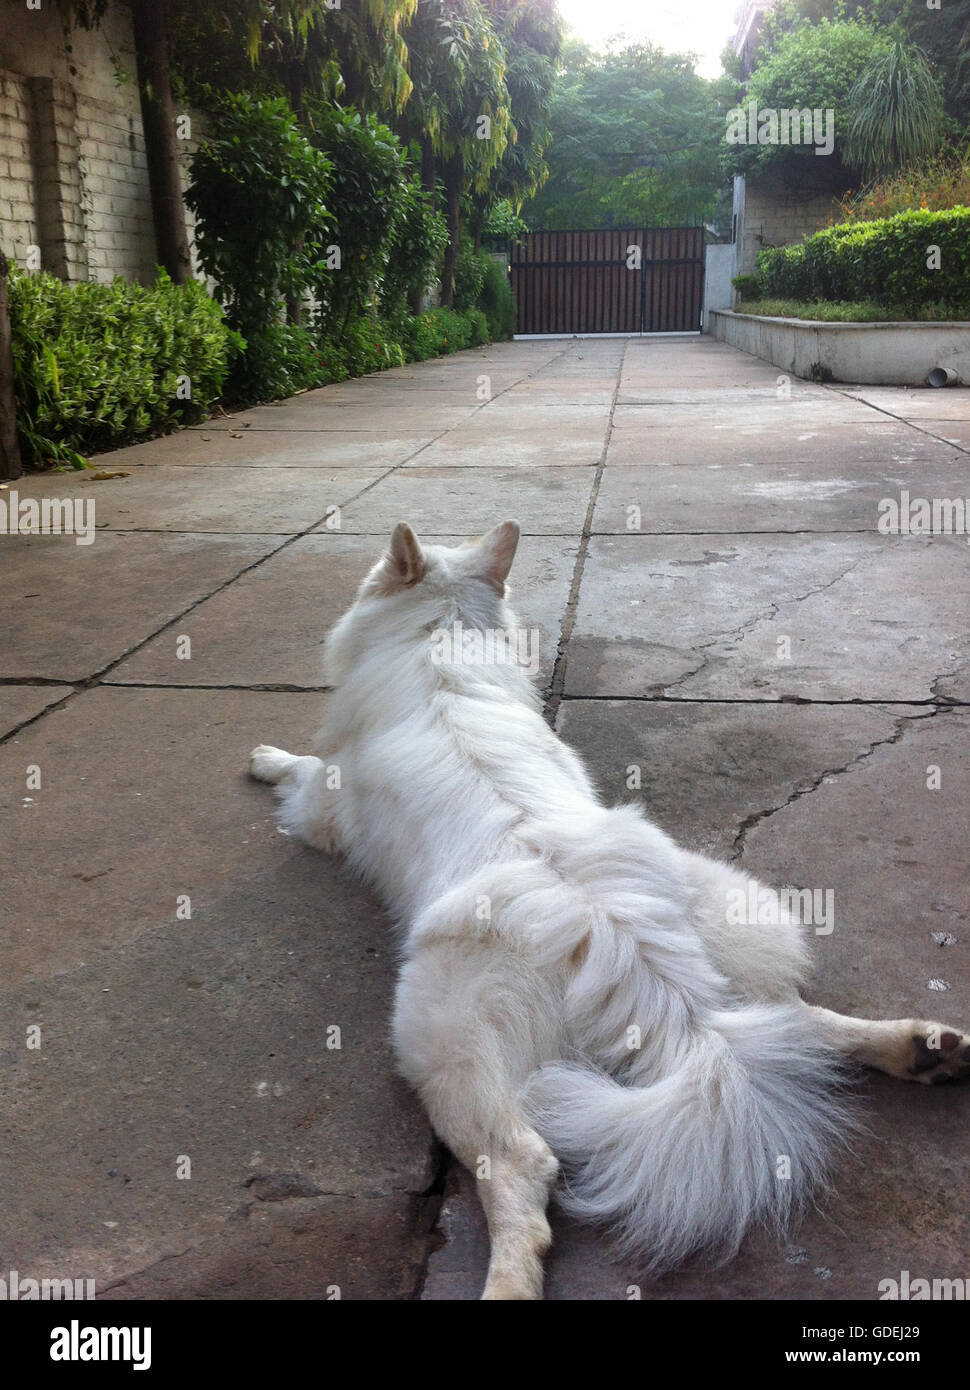 Dog lying in driveway outside house - Stock Image